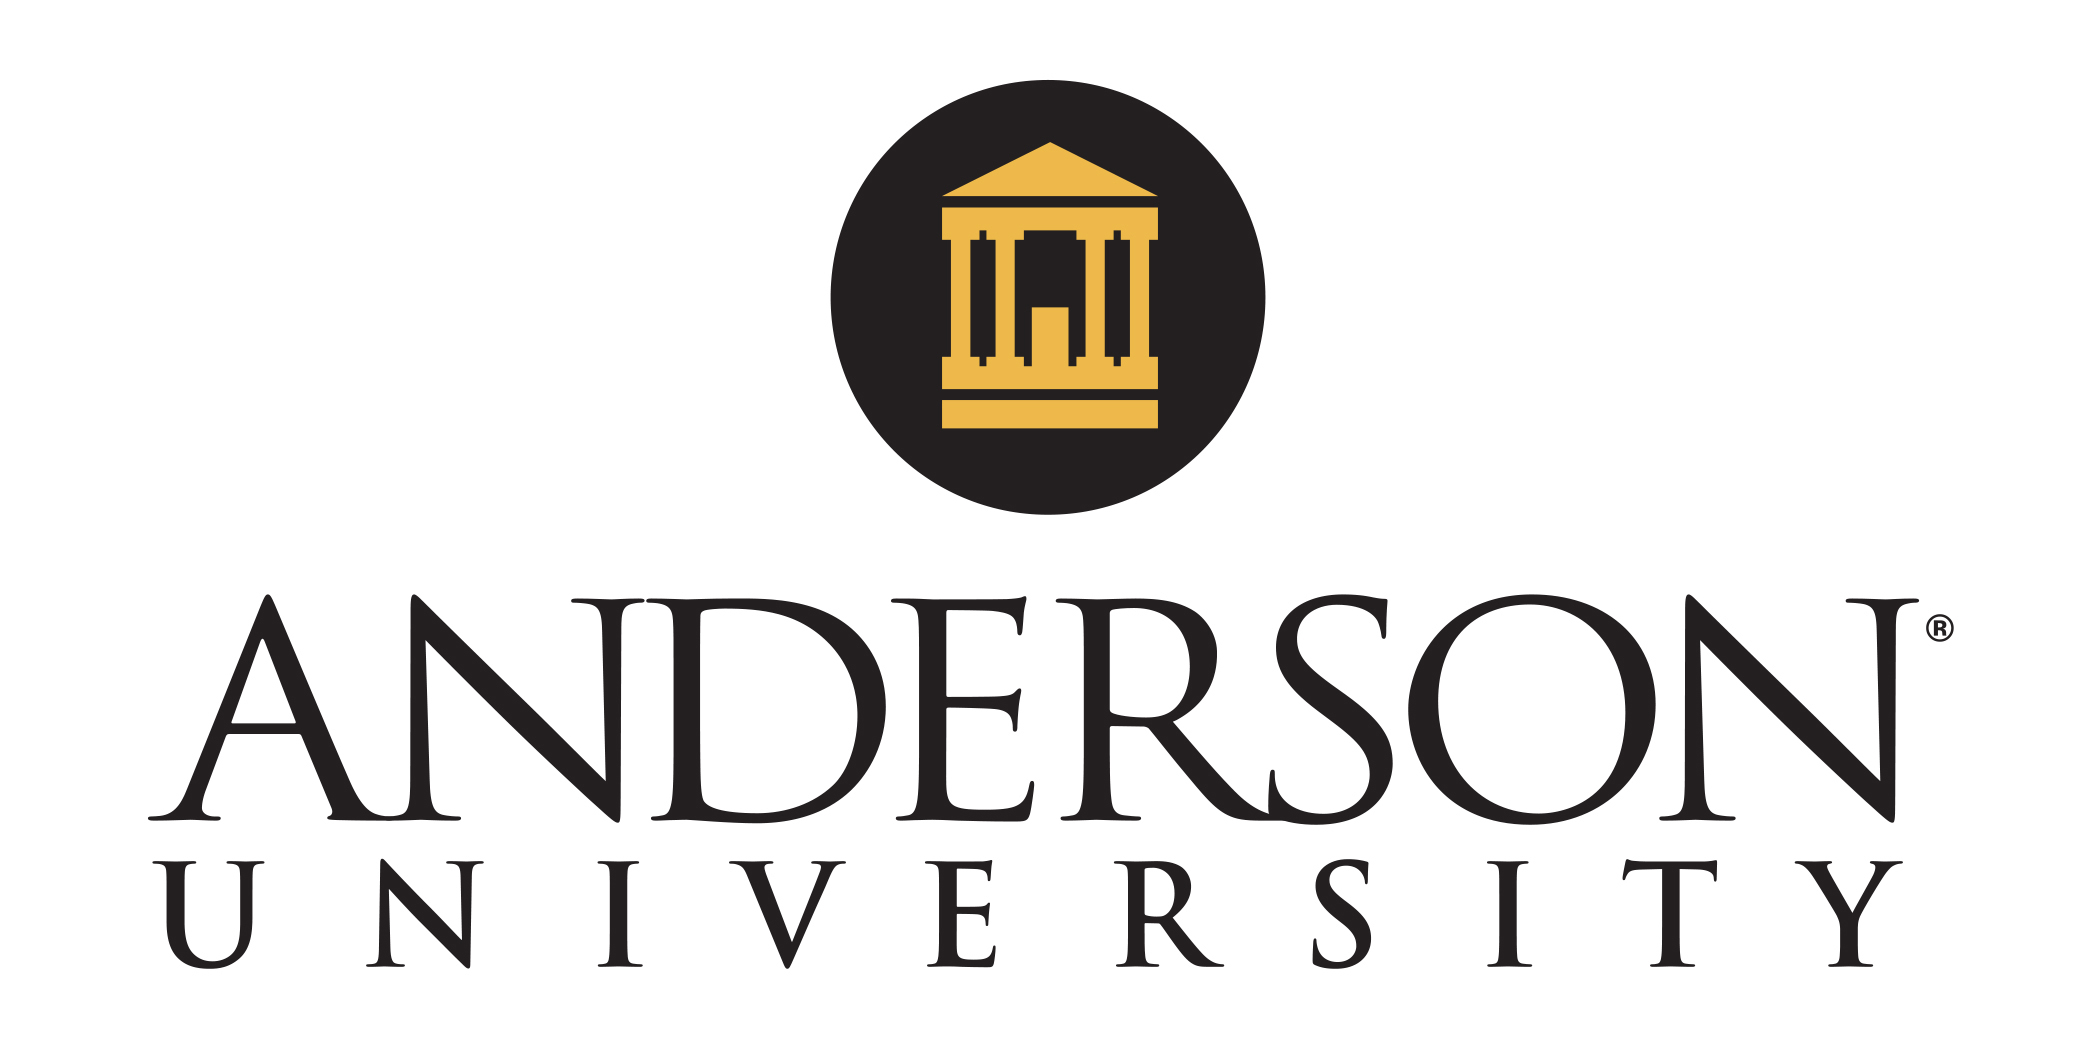 Anderson University Once Again Listed Among Best Online Programs